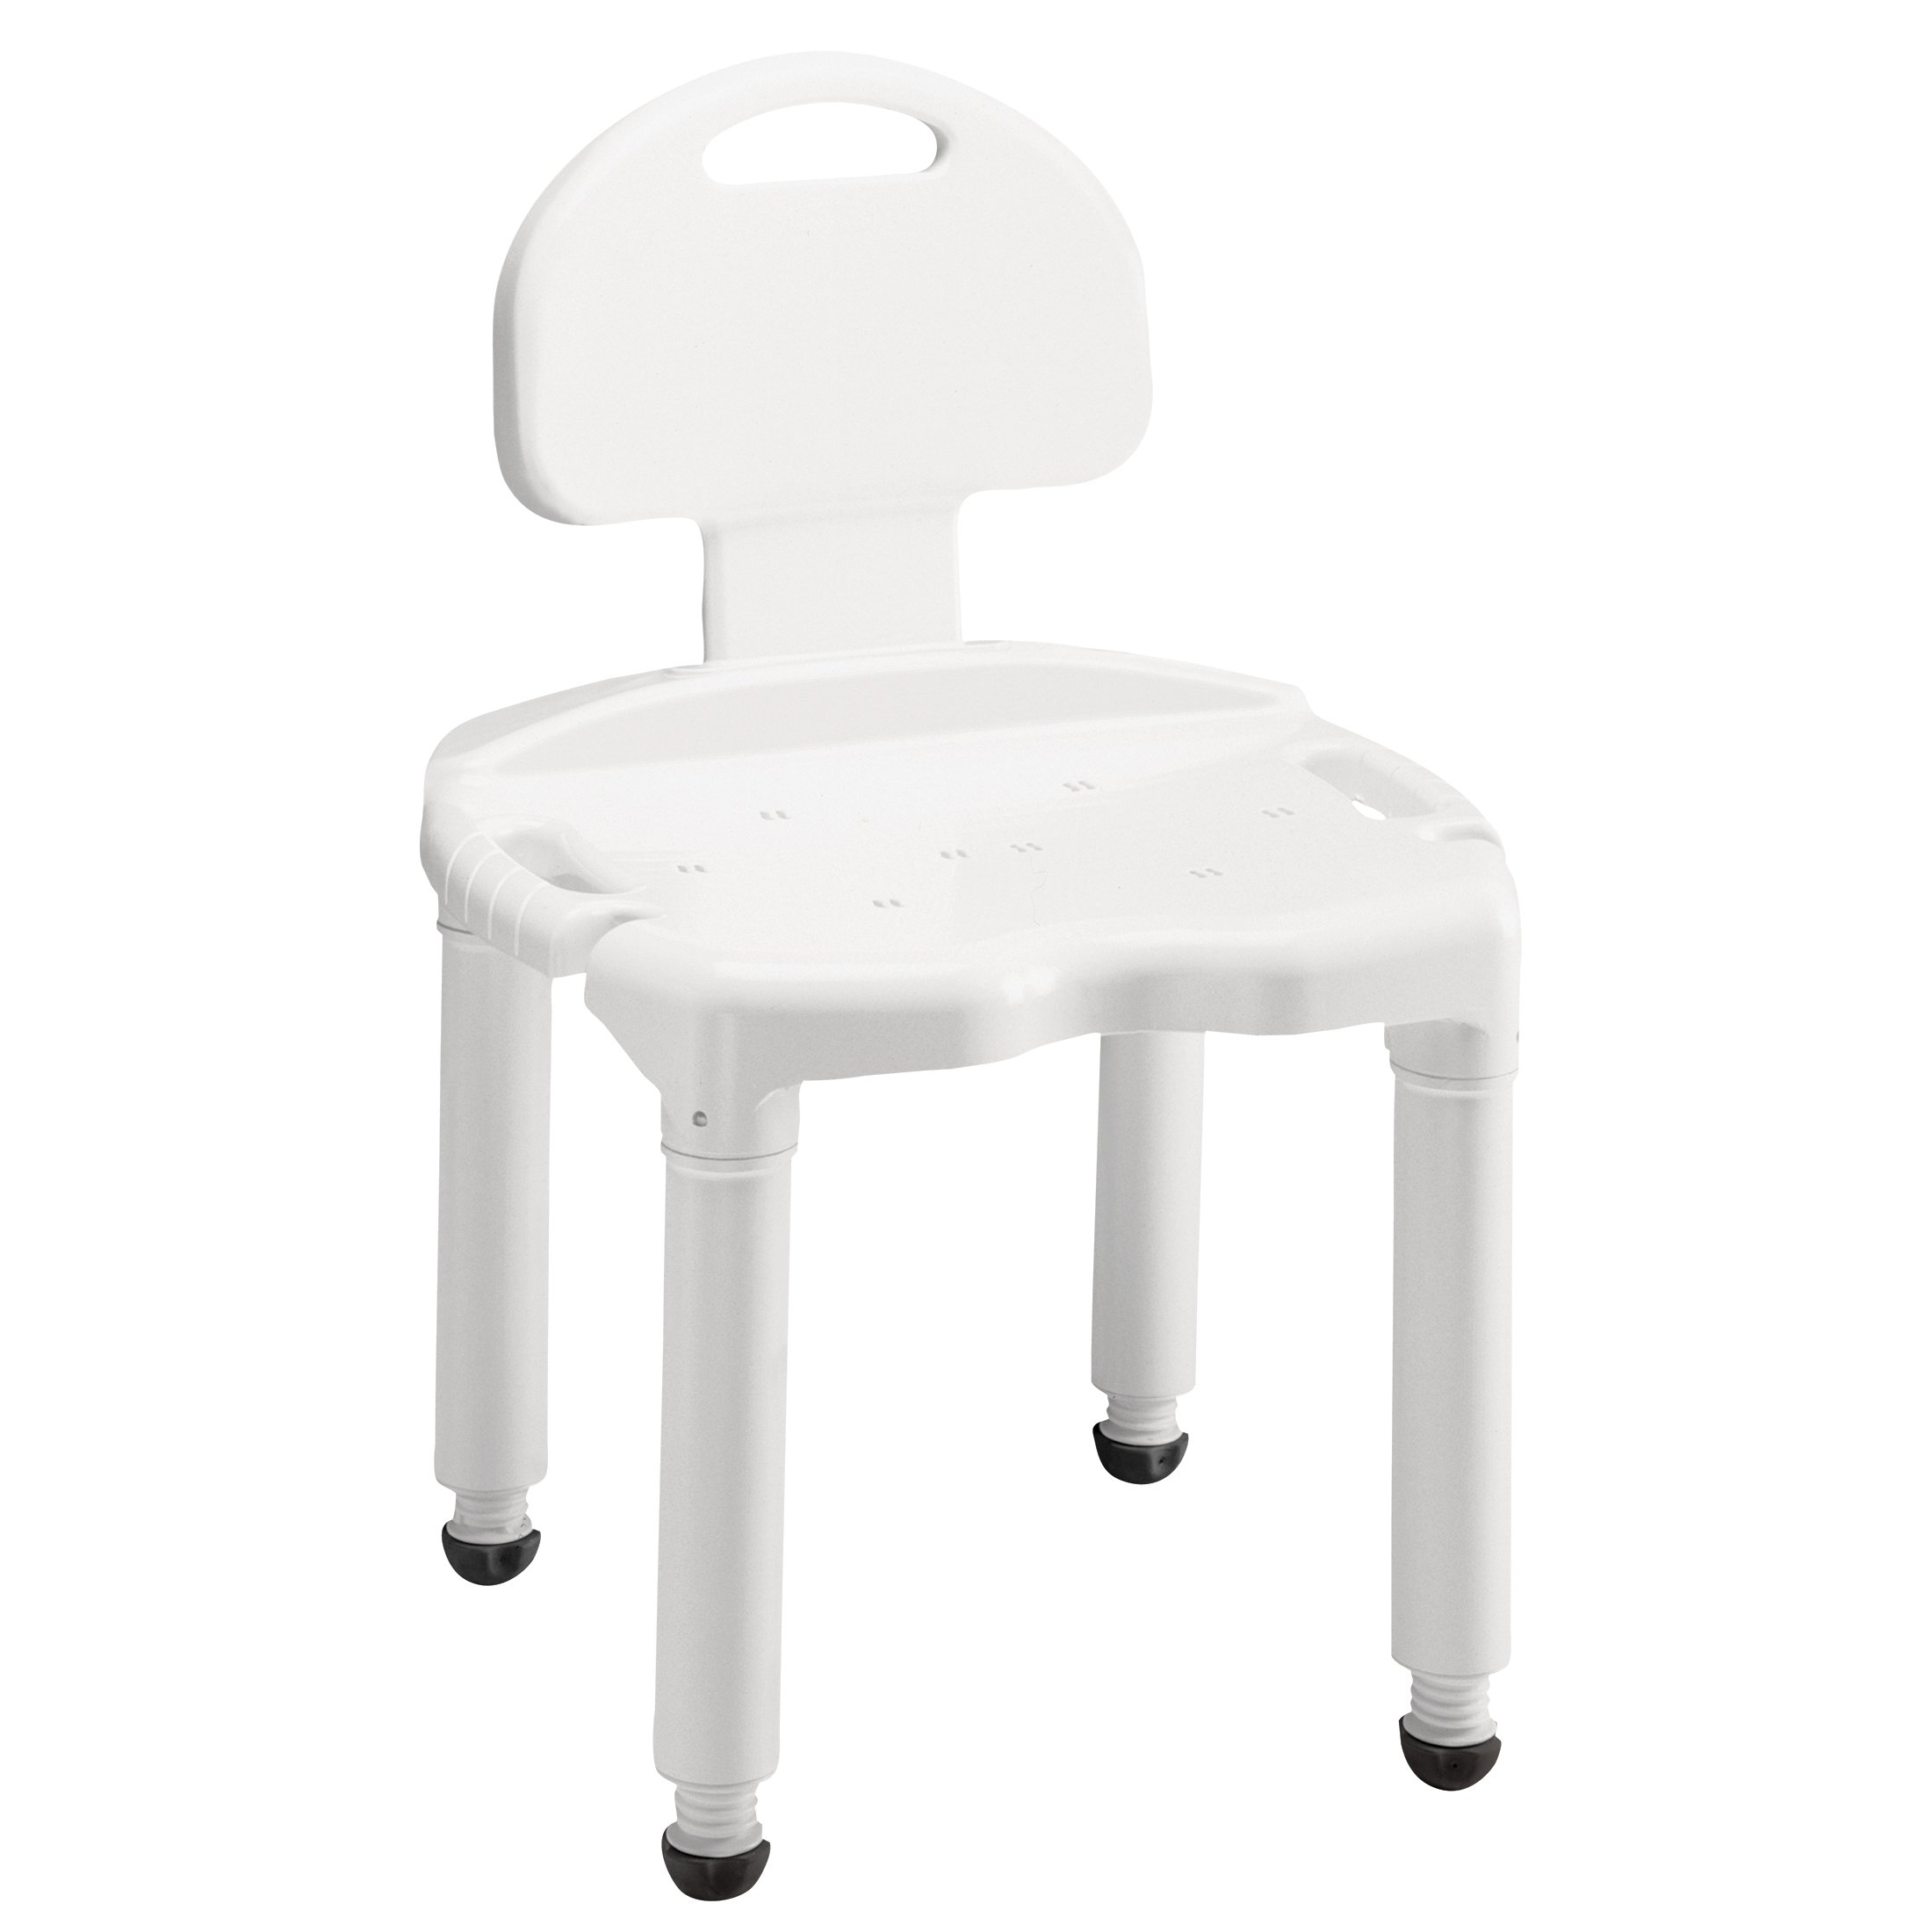 Carex Bath Seat And Shower Chair With Back For Seniors